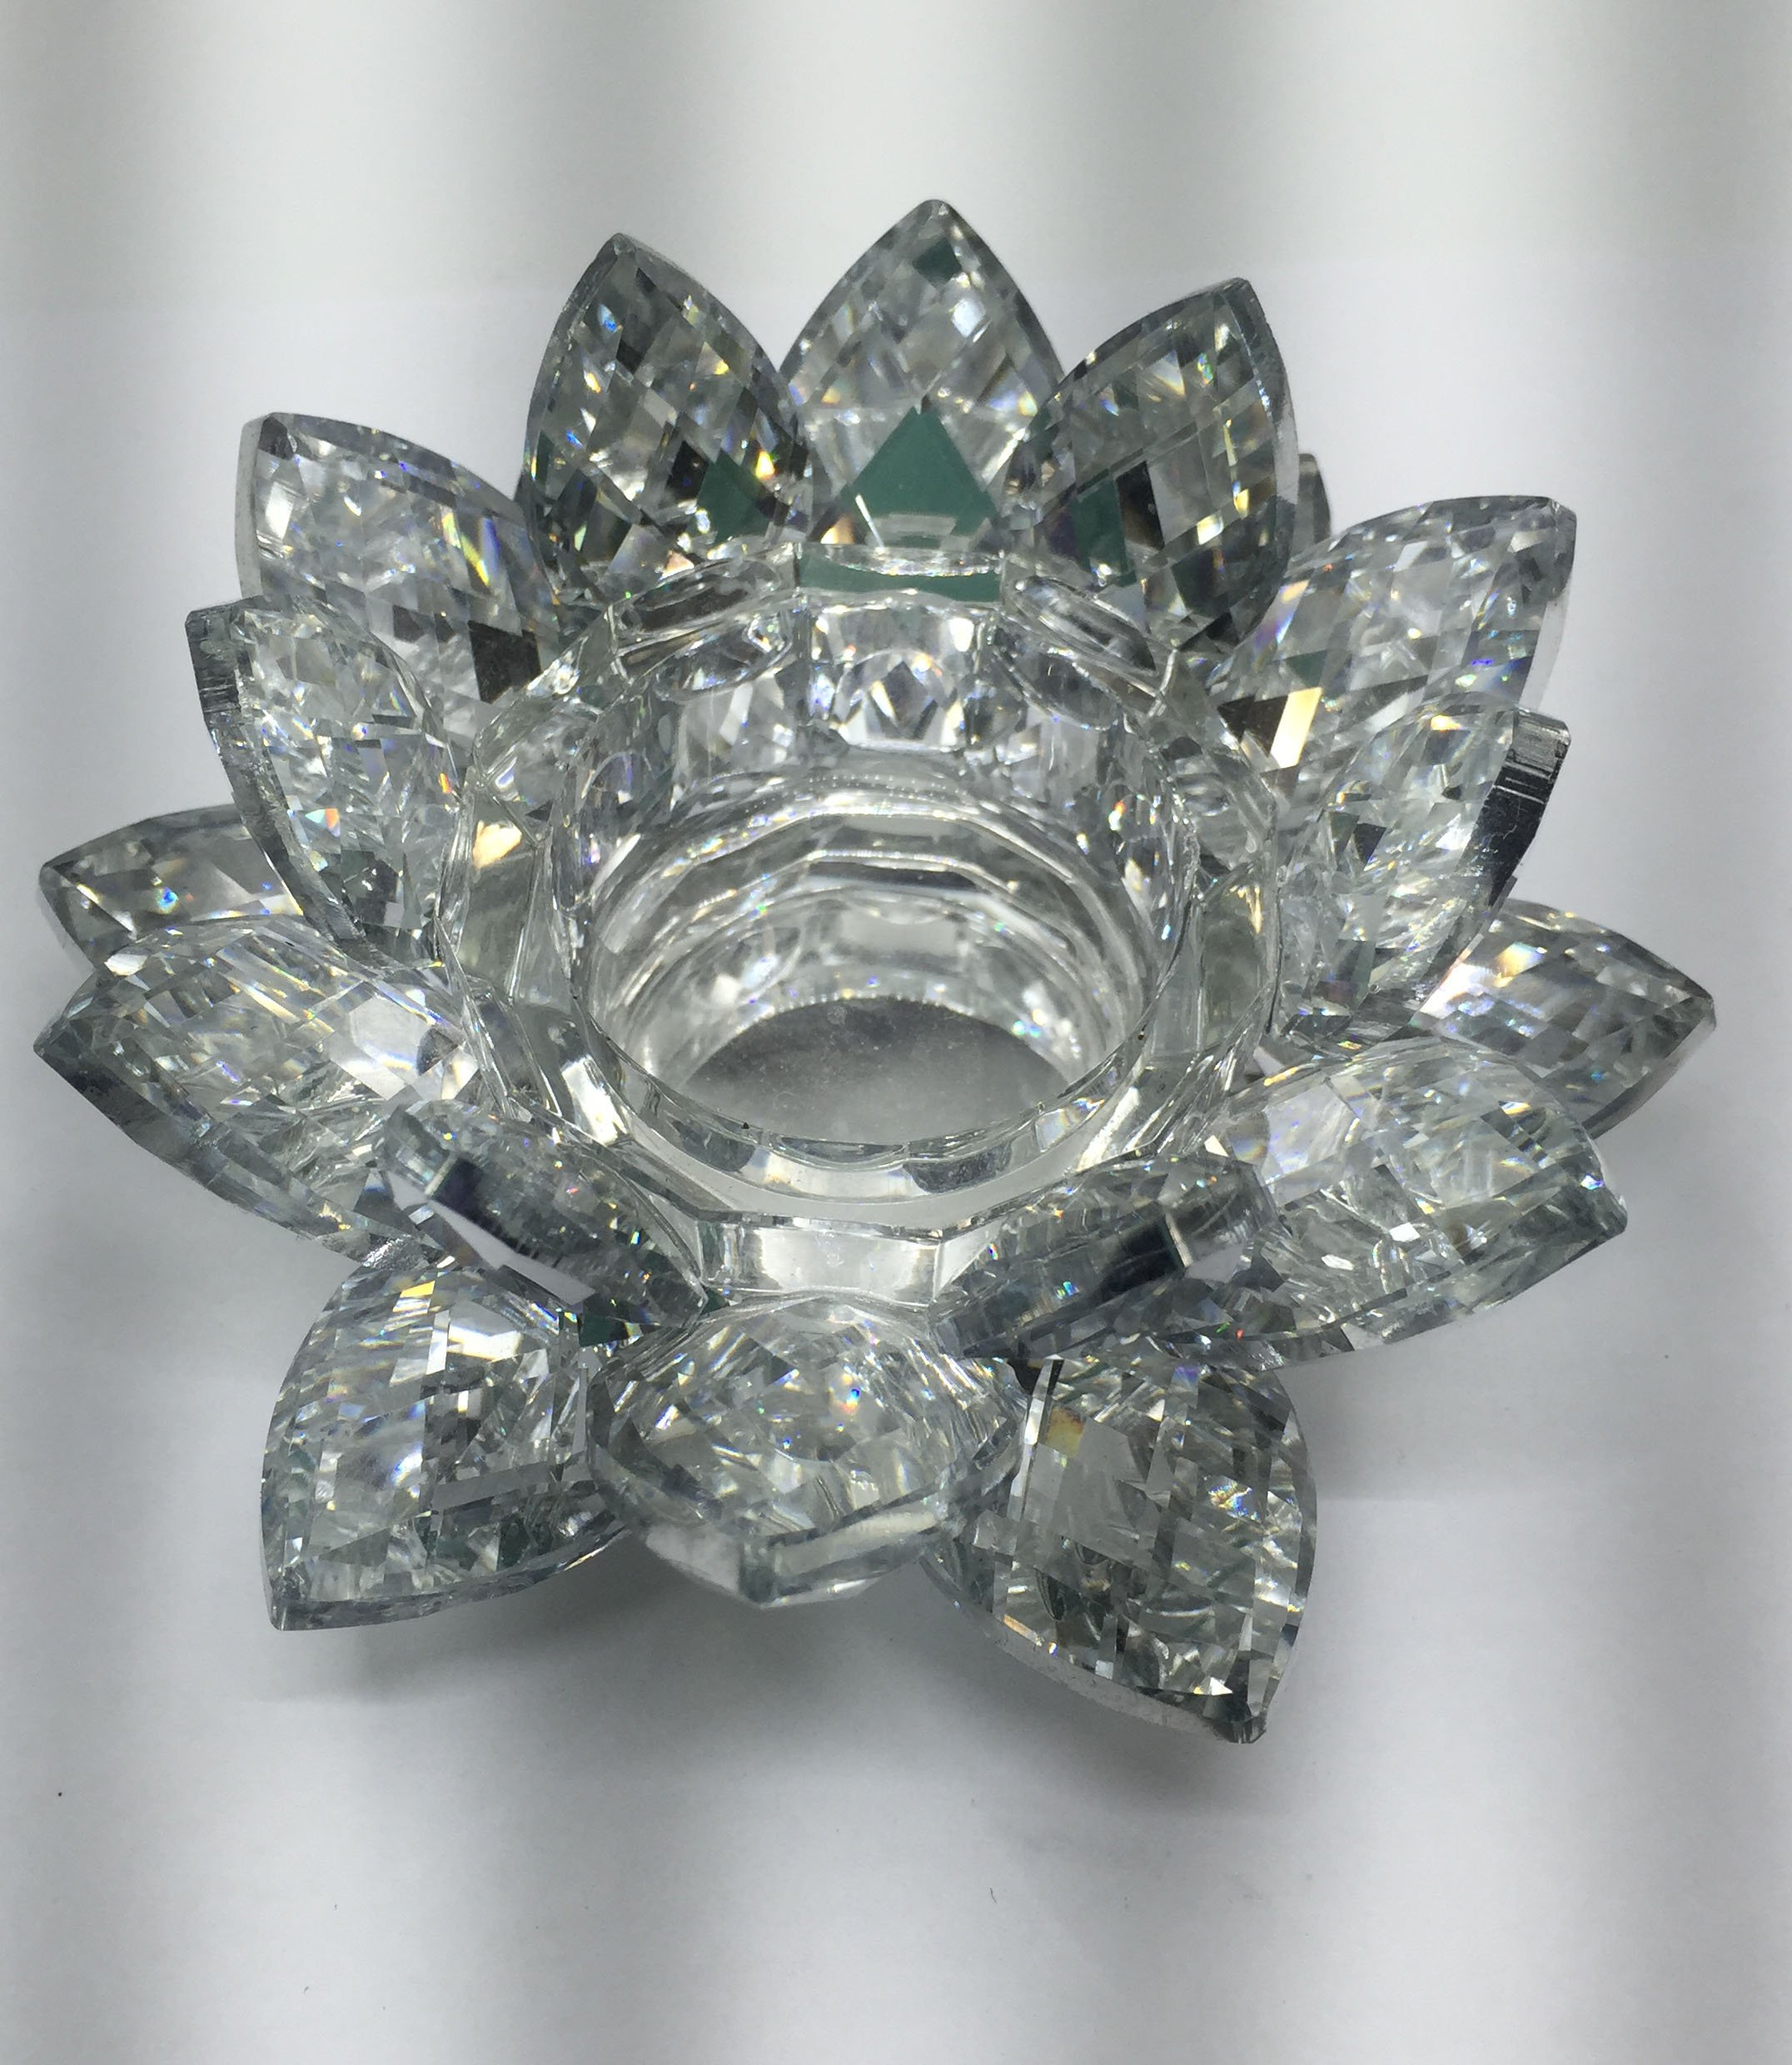 SunRise 4.5 inch Centerpieces Crystal Lotus Candle Holder Collectible Figurine Crystal (Silver) by SunRise (Image #1)